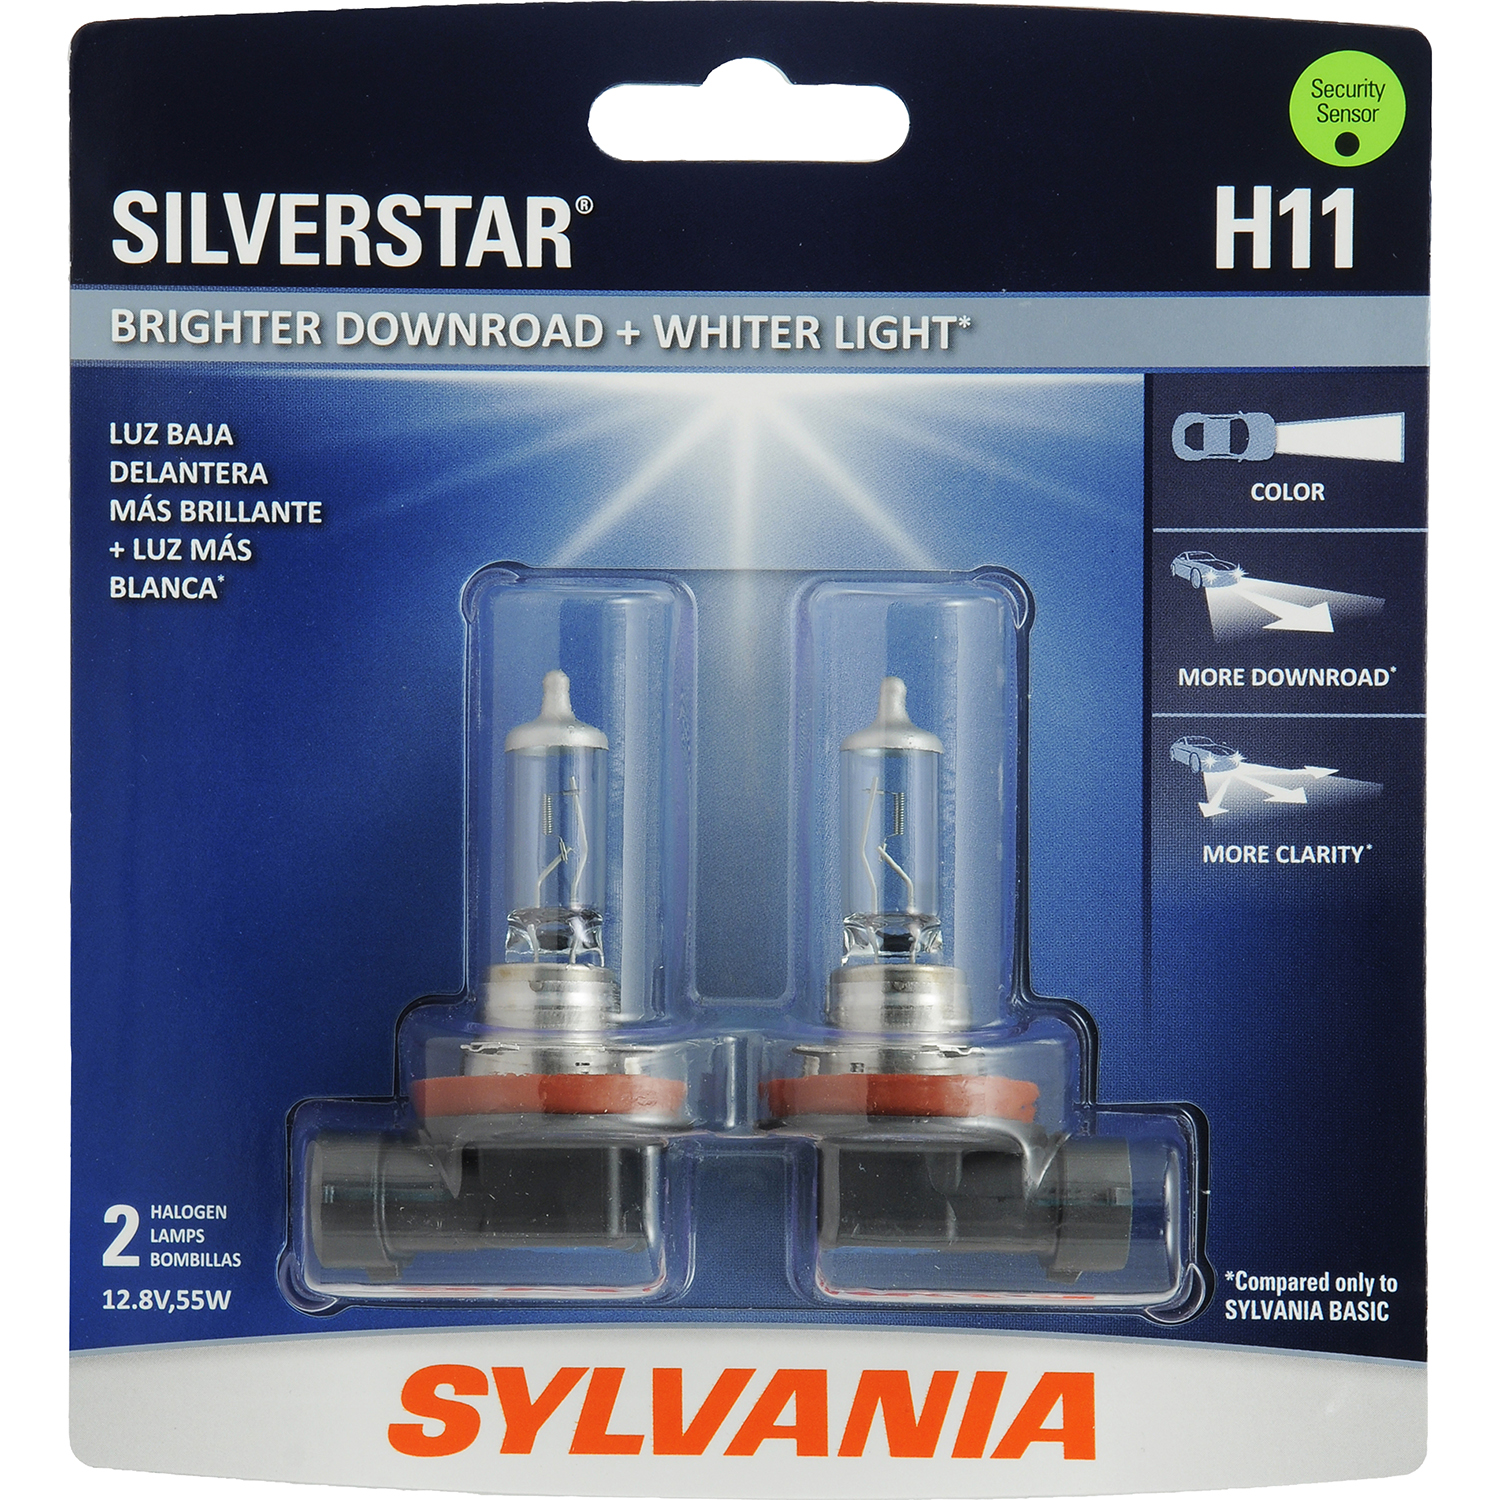 SYLVANIA H11 SilverStar Halogen Headlight Bulb, Pack of 2